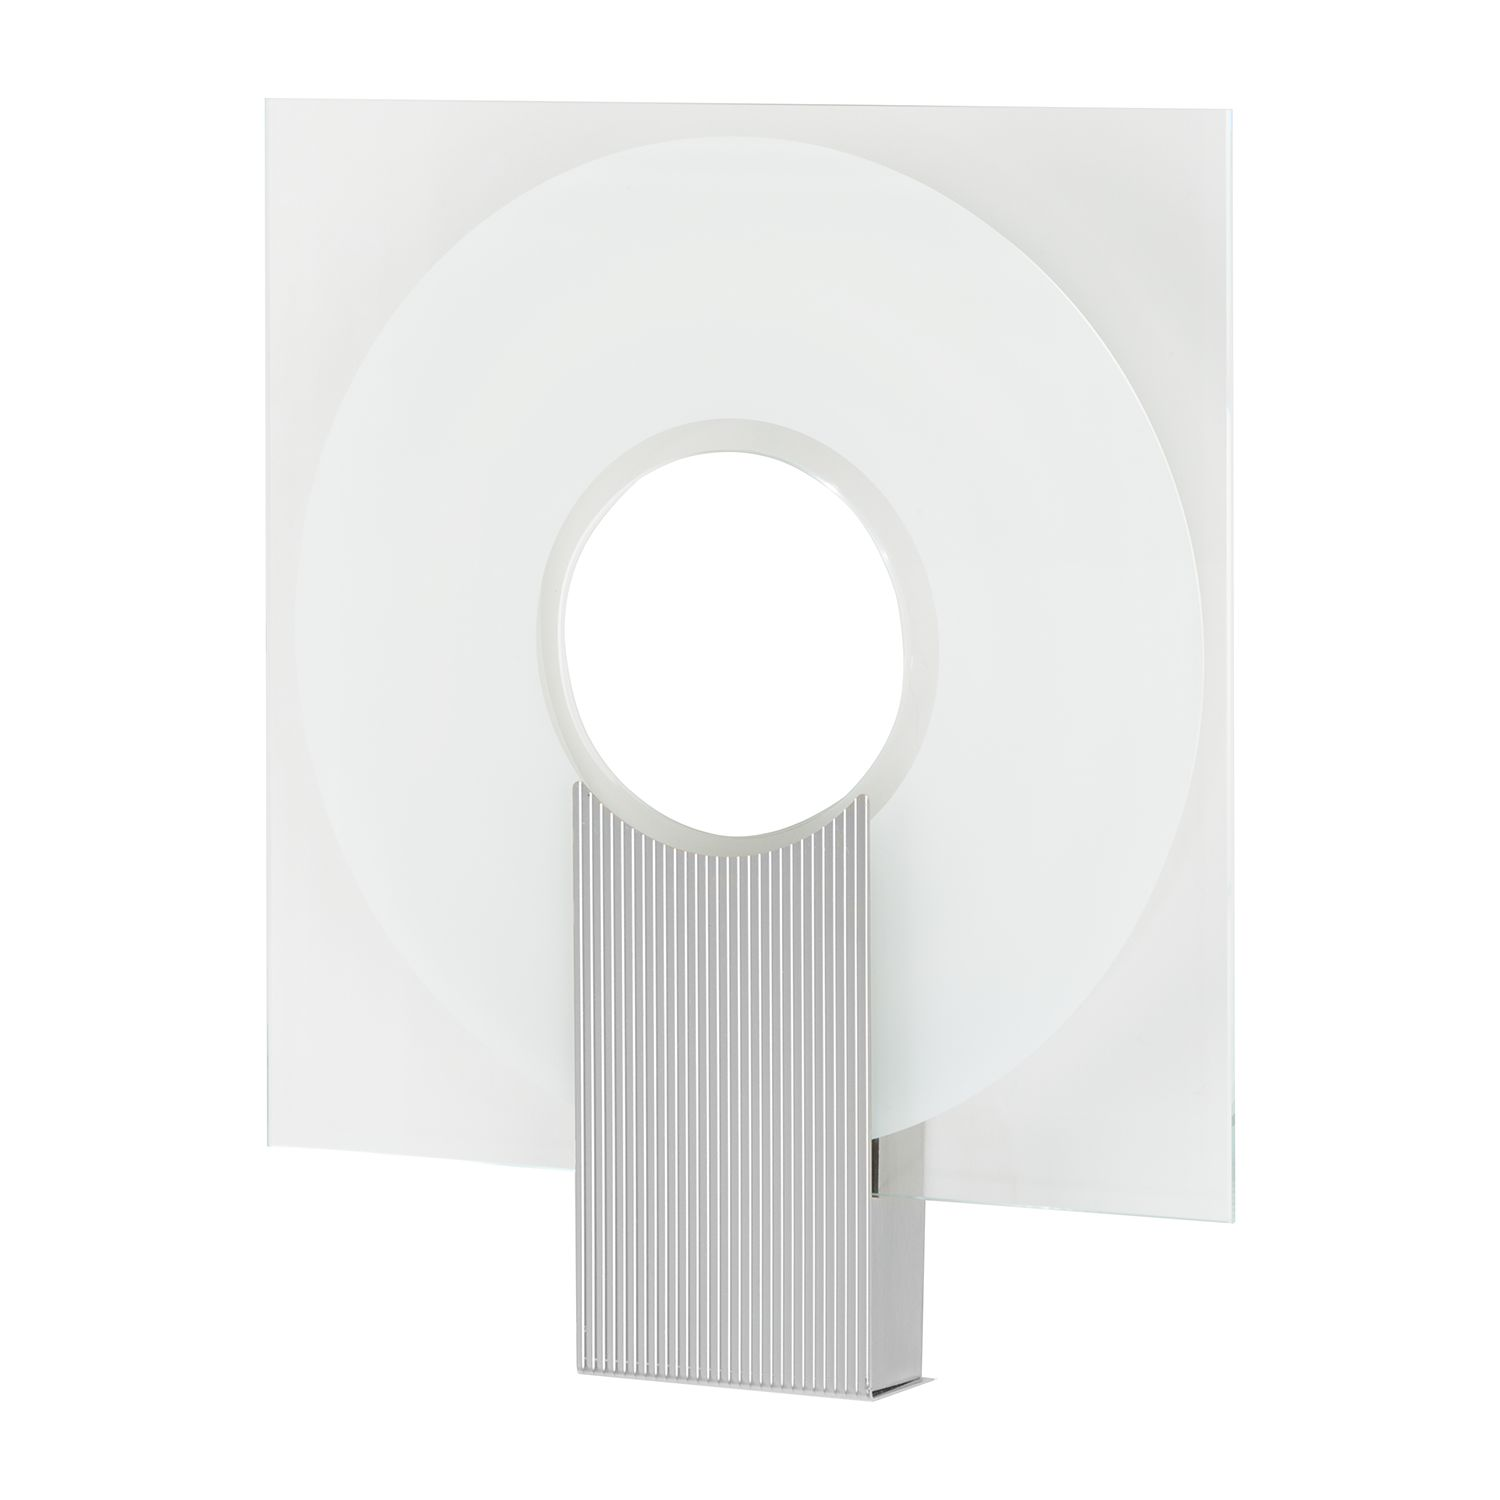 energie  A+, Wandlamp Q - glas/metaal - wit - 1 lichtbron, Lampadina